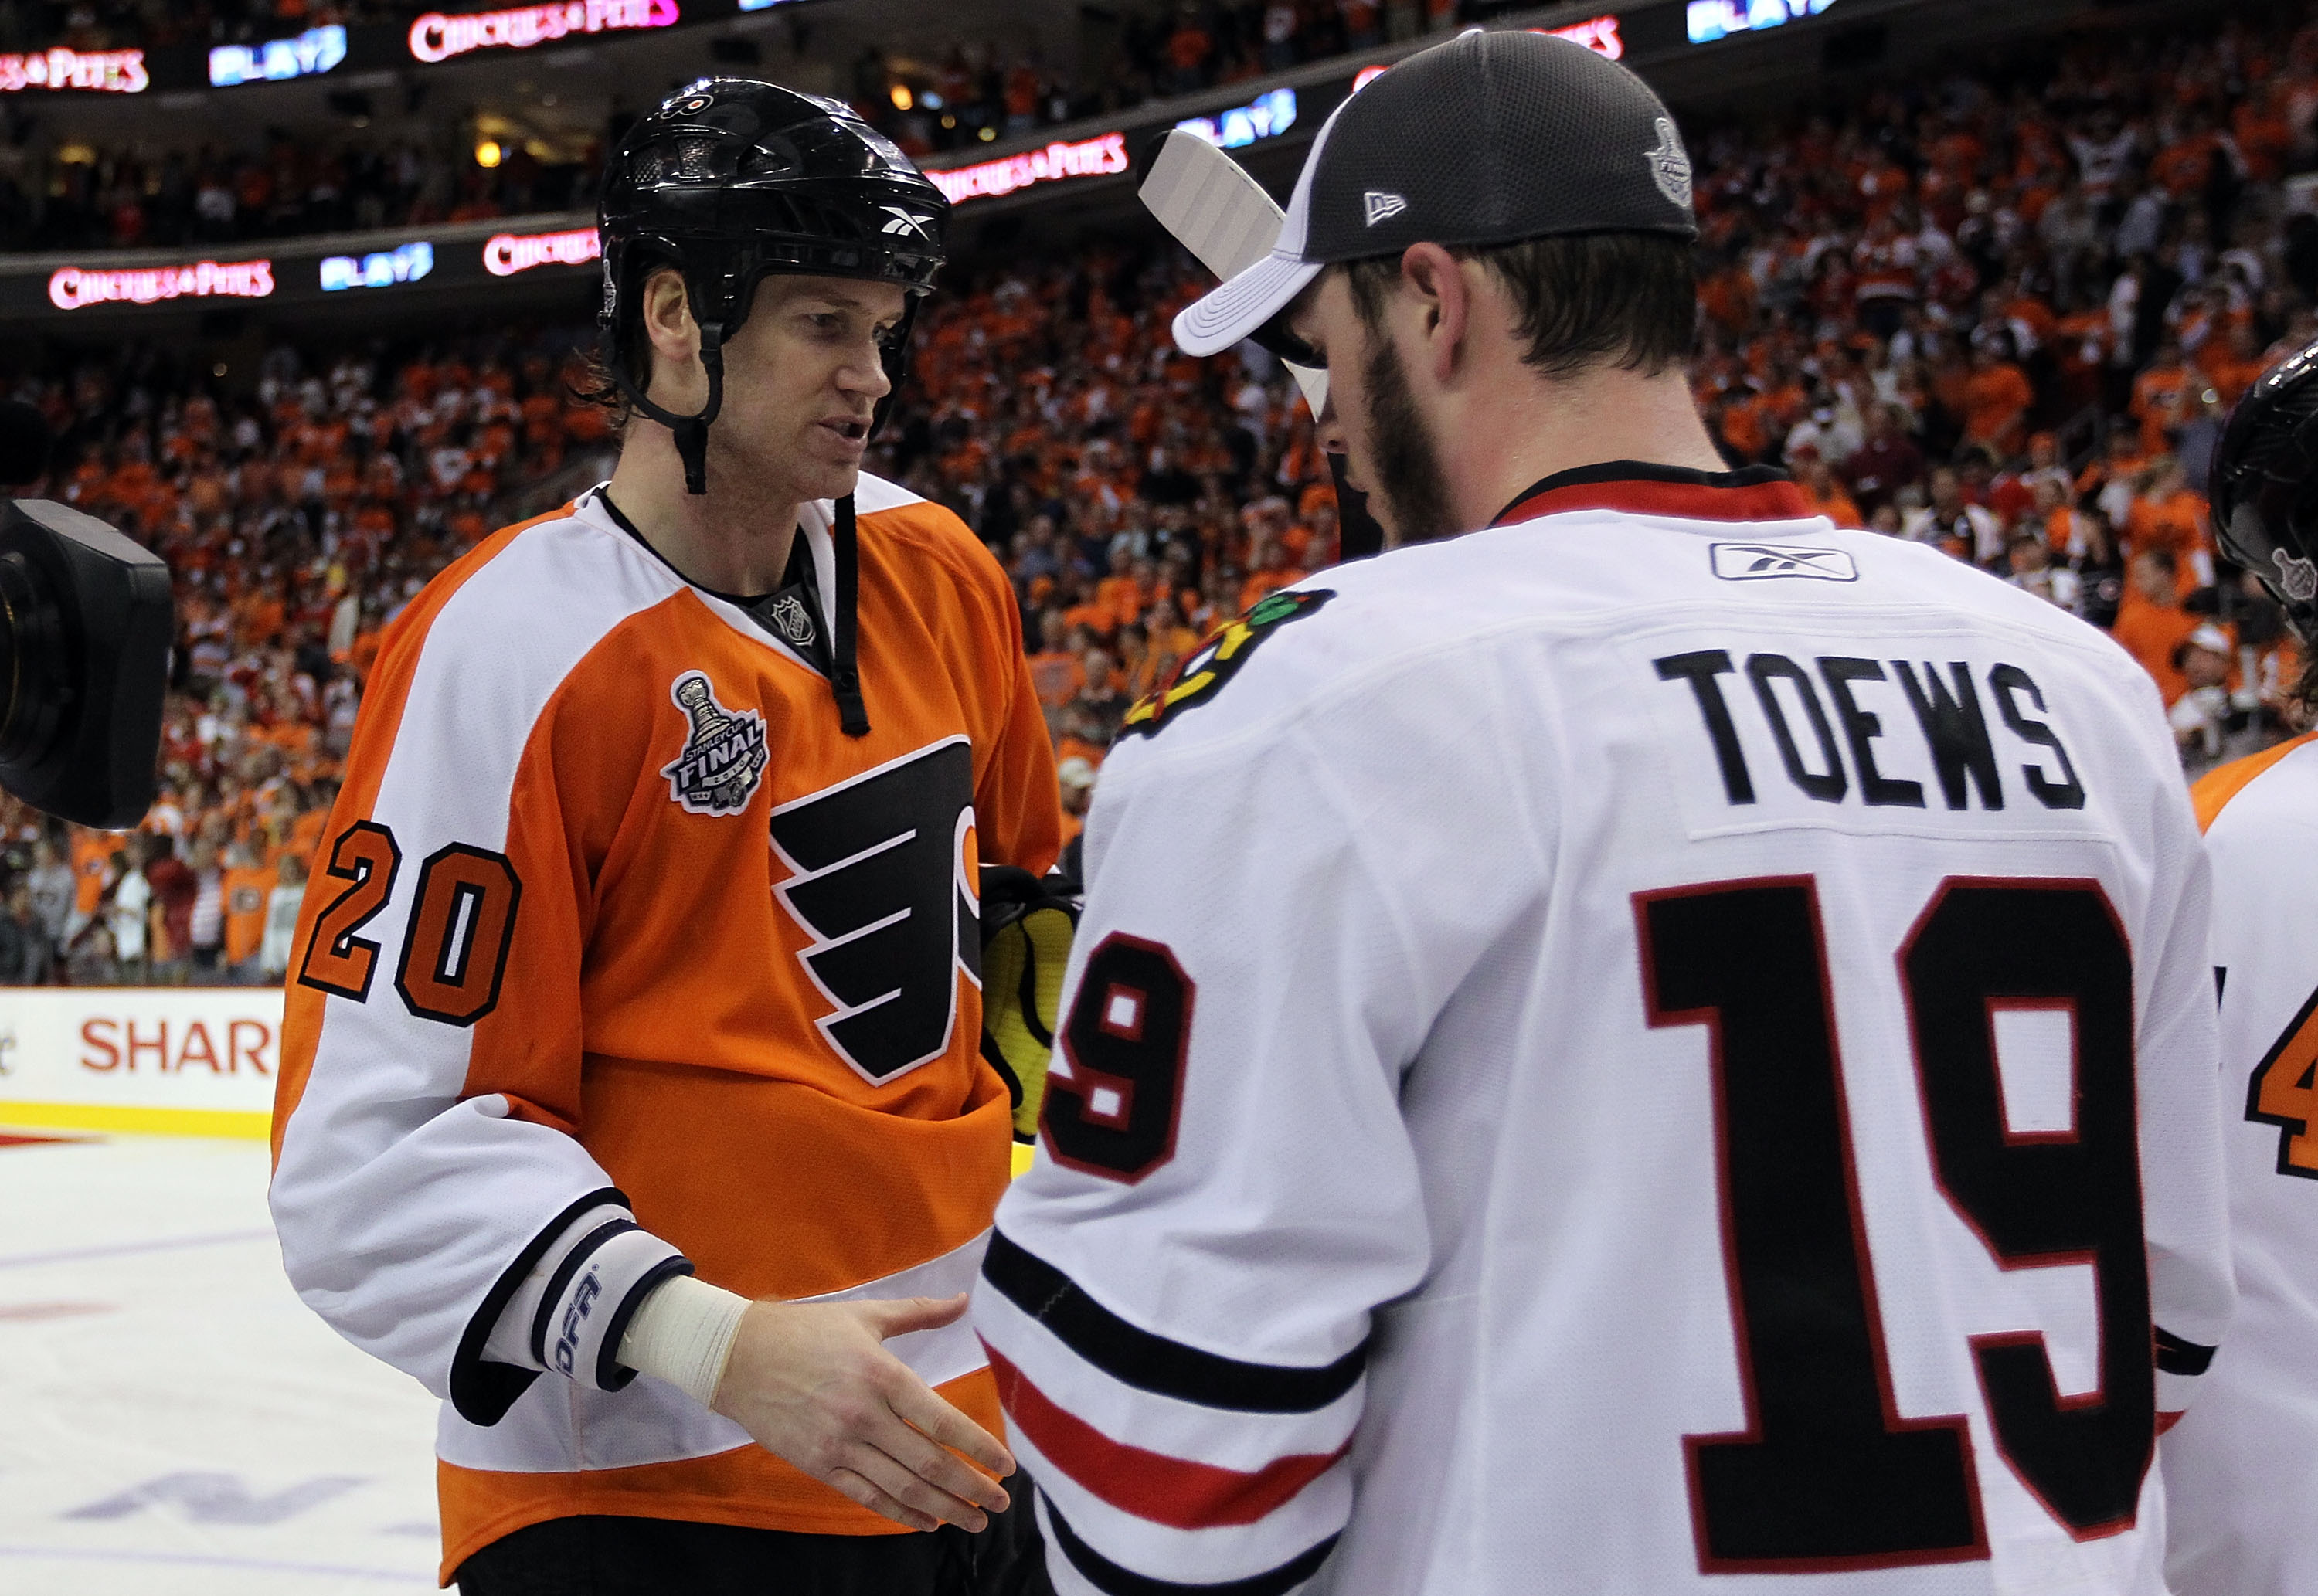 PHILADELPHIA - JUNE 09:  Jonathan Toews #19 of the Chicago Blackhawks shakes hands with Chris Pronger #20 of the Philadelphia Flyers after the Blackhawks defeated the Philadelphia Flyers 4-3 to win the Stanley Cup in Game Six of the 2010 NHL Stanley Cup F